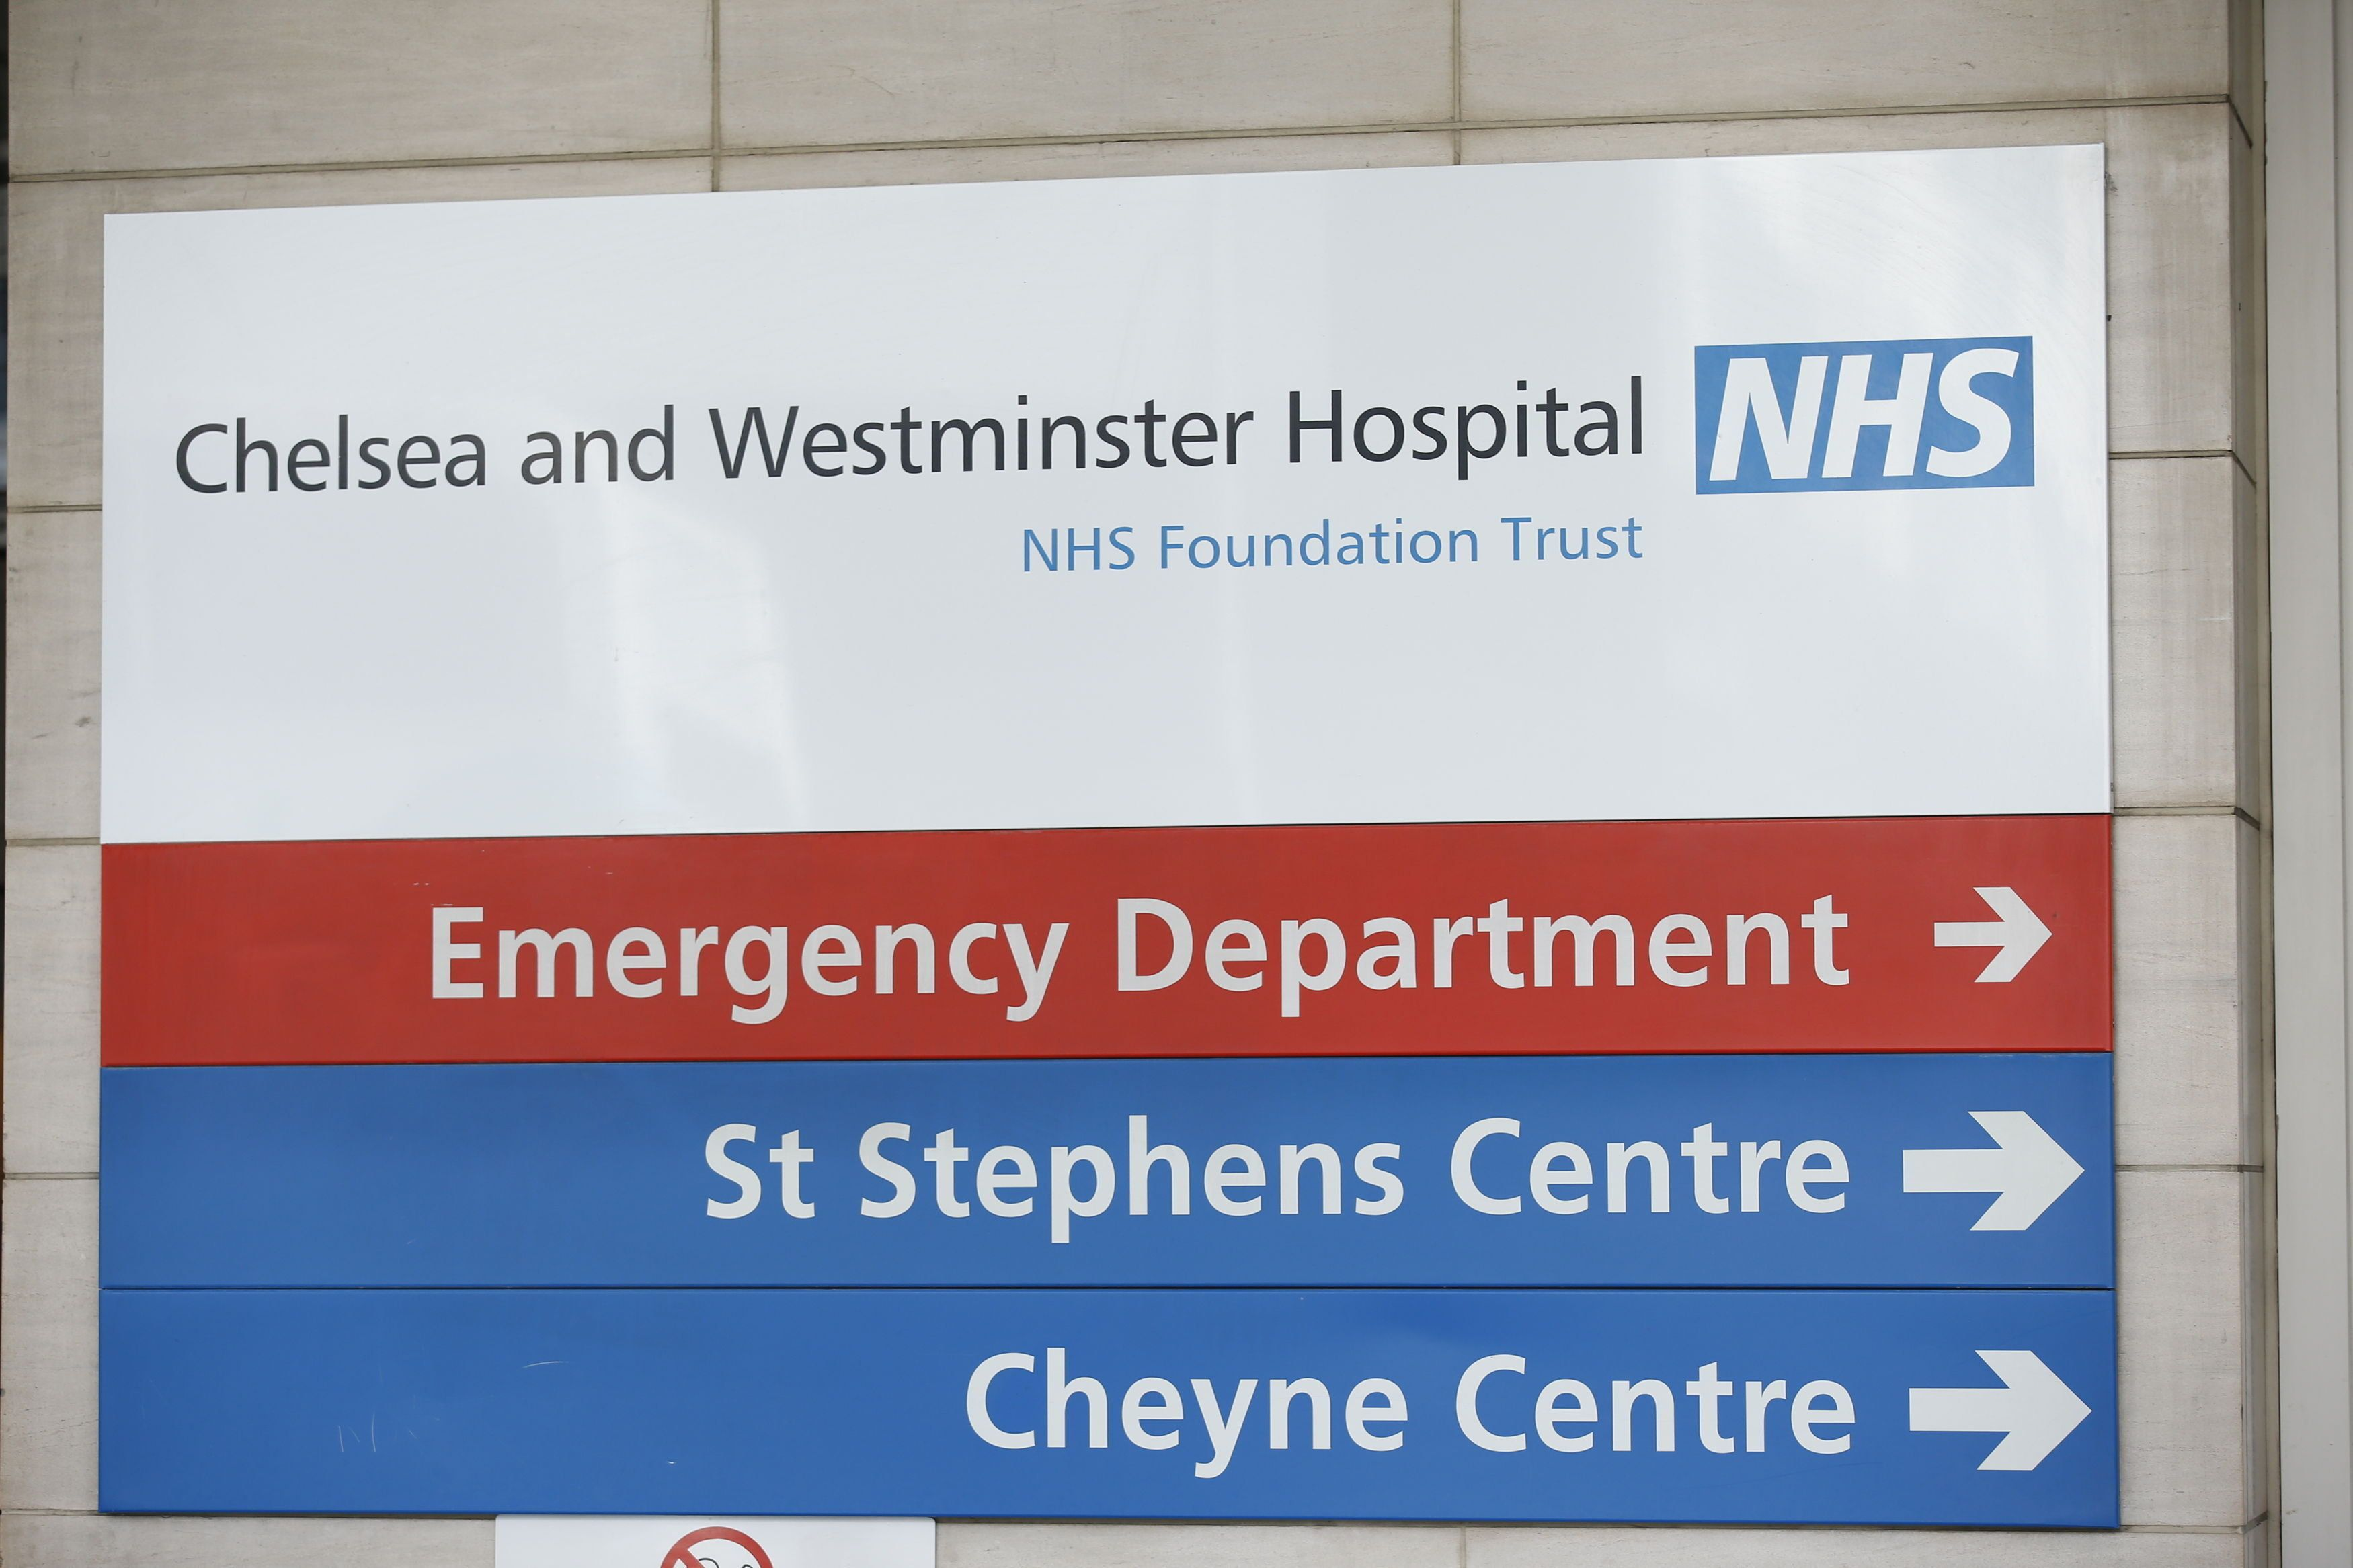 Chelsea and Westminster Hospital NHS Foundation Trust will take over the trial of PrEP on June